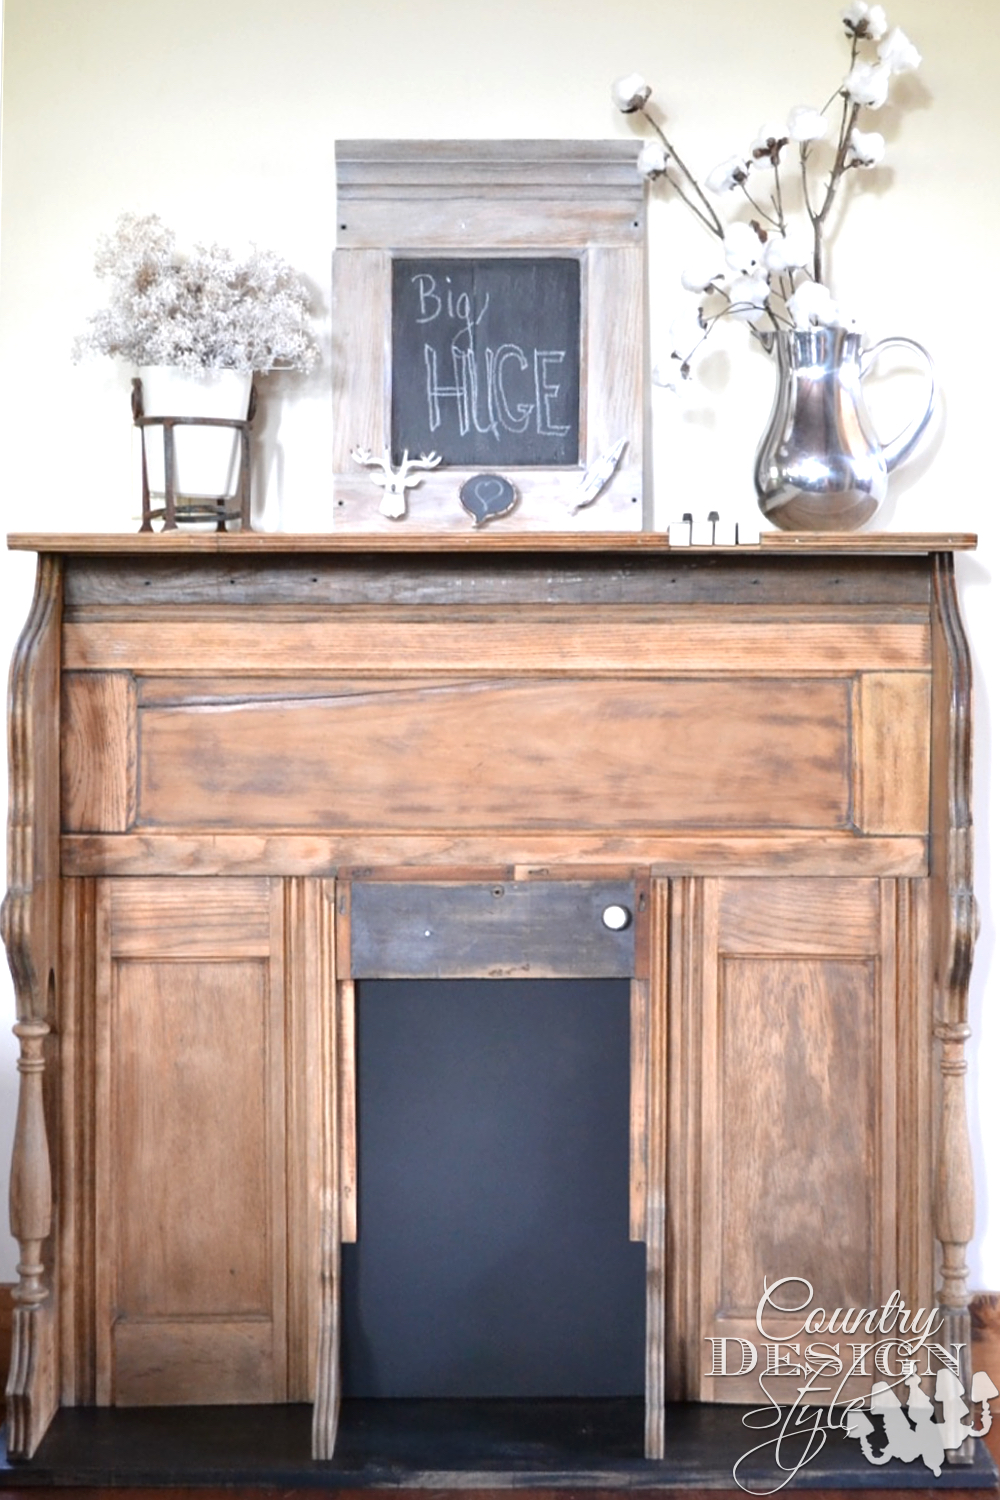 Organ remade into faux mantel with tutorial for inserting piano keys into top, chalkboard in firebox. Displayed with DIY cotton stems. | countrydesignstyle.com